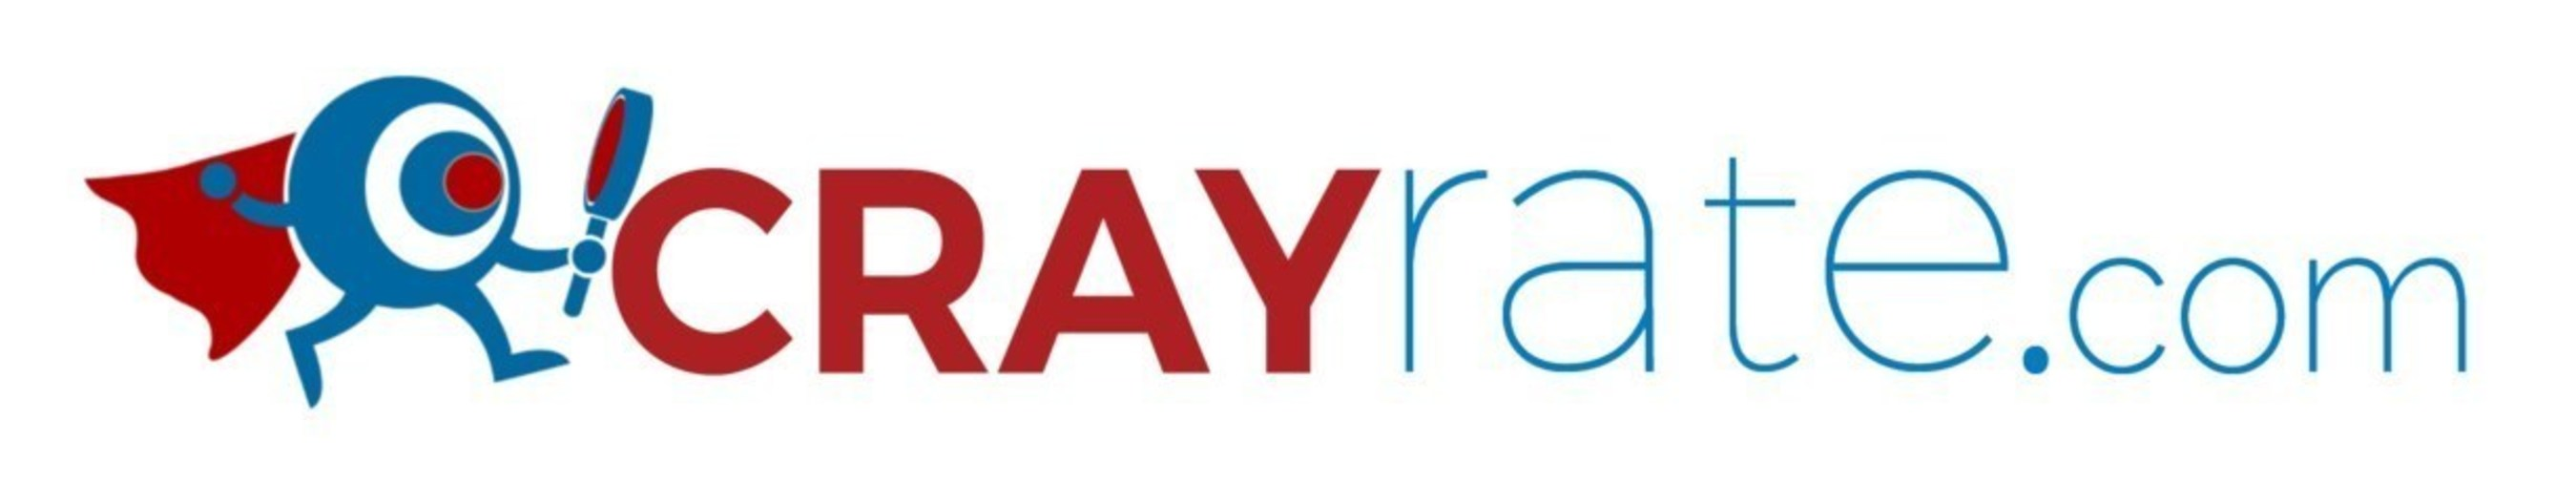 Make Dollars From Dating Disasters With CrayRate.com